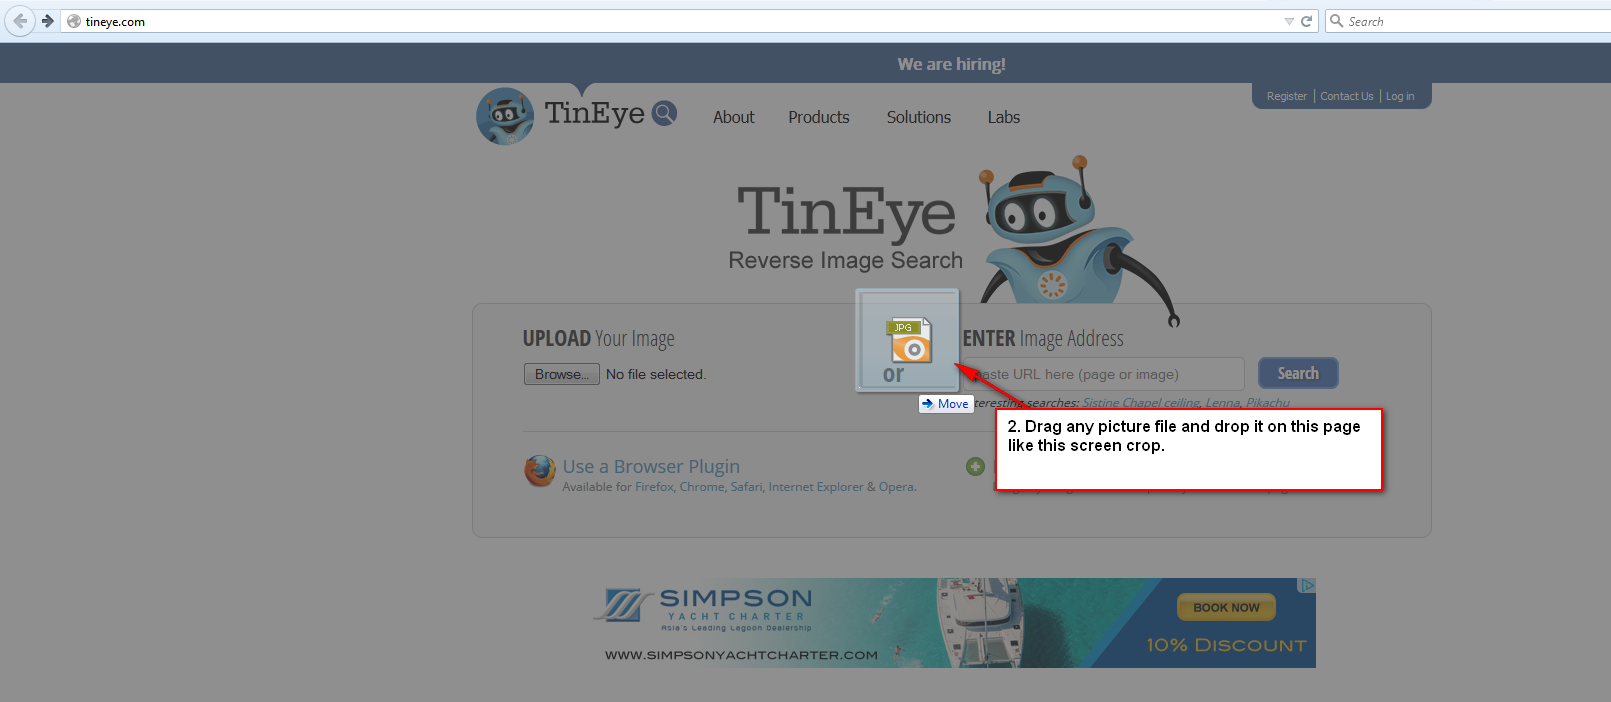 How to check copyright pictures using tineye review system